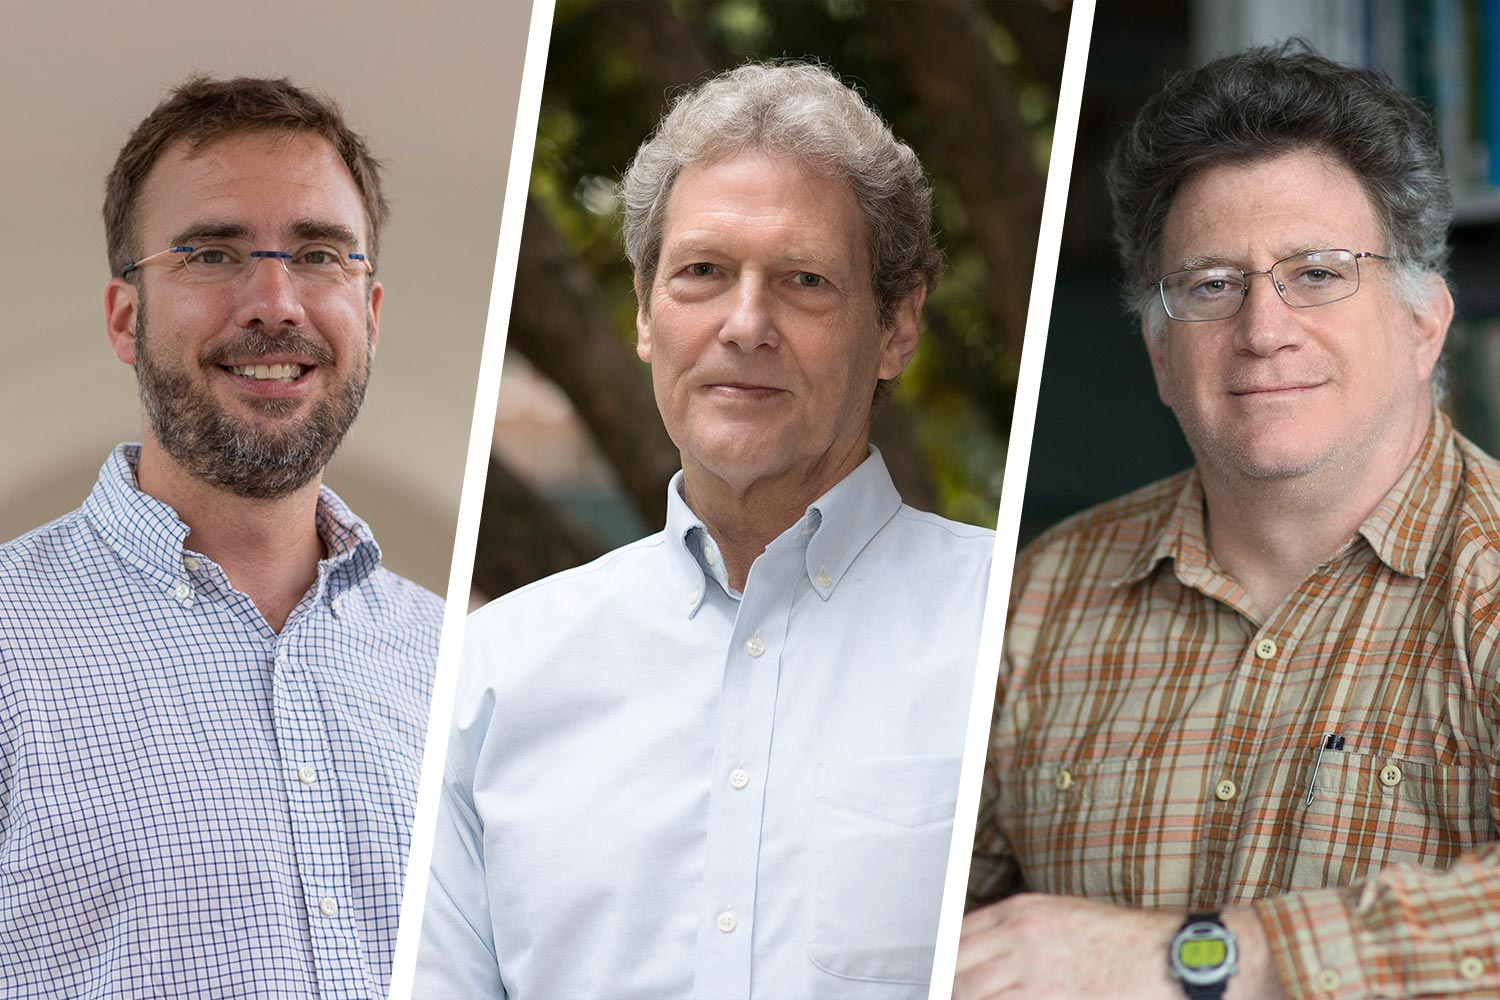 Huish's associate Appalachian Prosperity Project fellows, chemical engineer Bryan Berger, biologist Mike Timko and environmental scientist Manuel Lerdau.